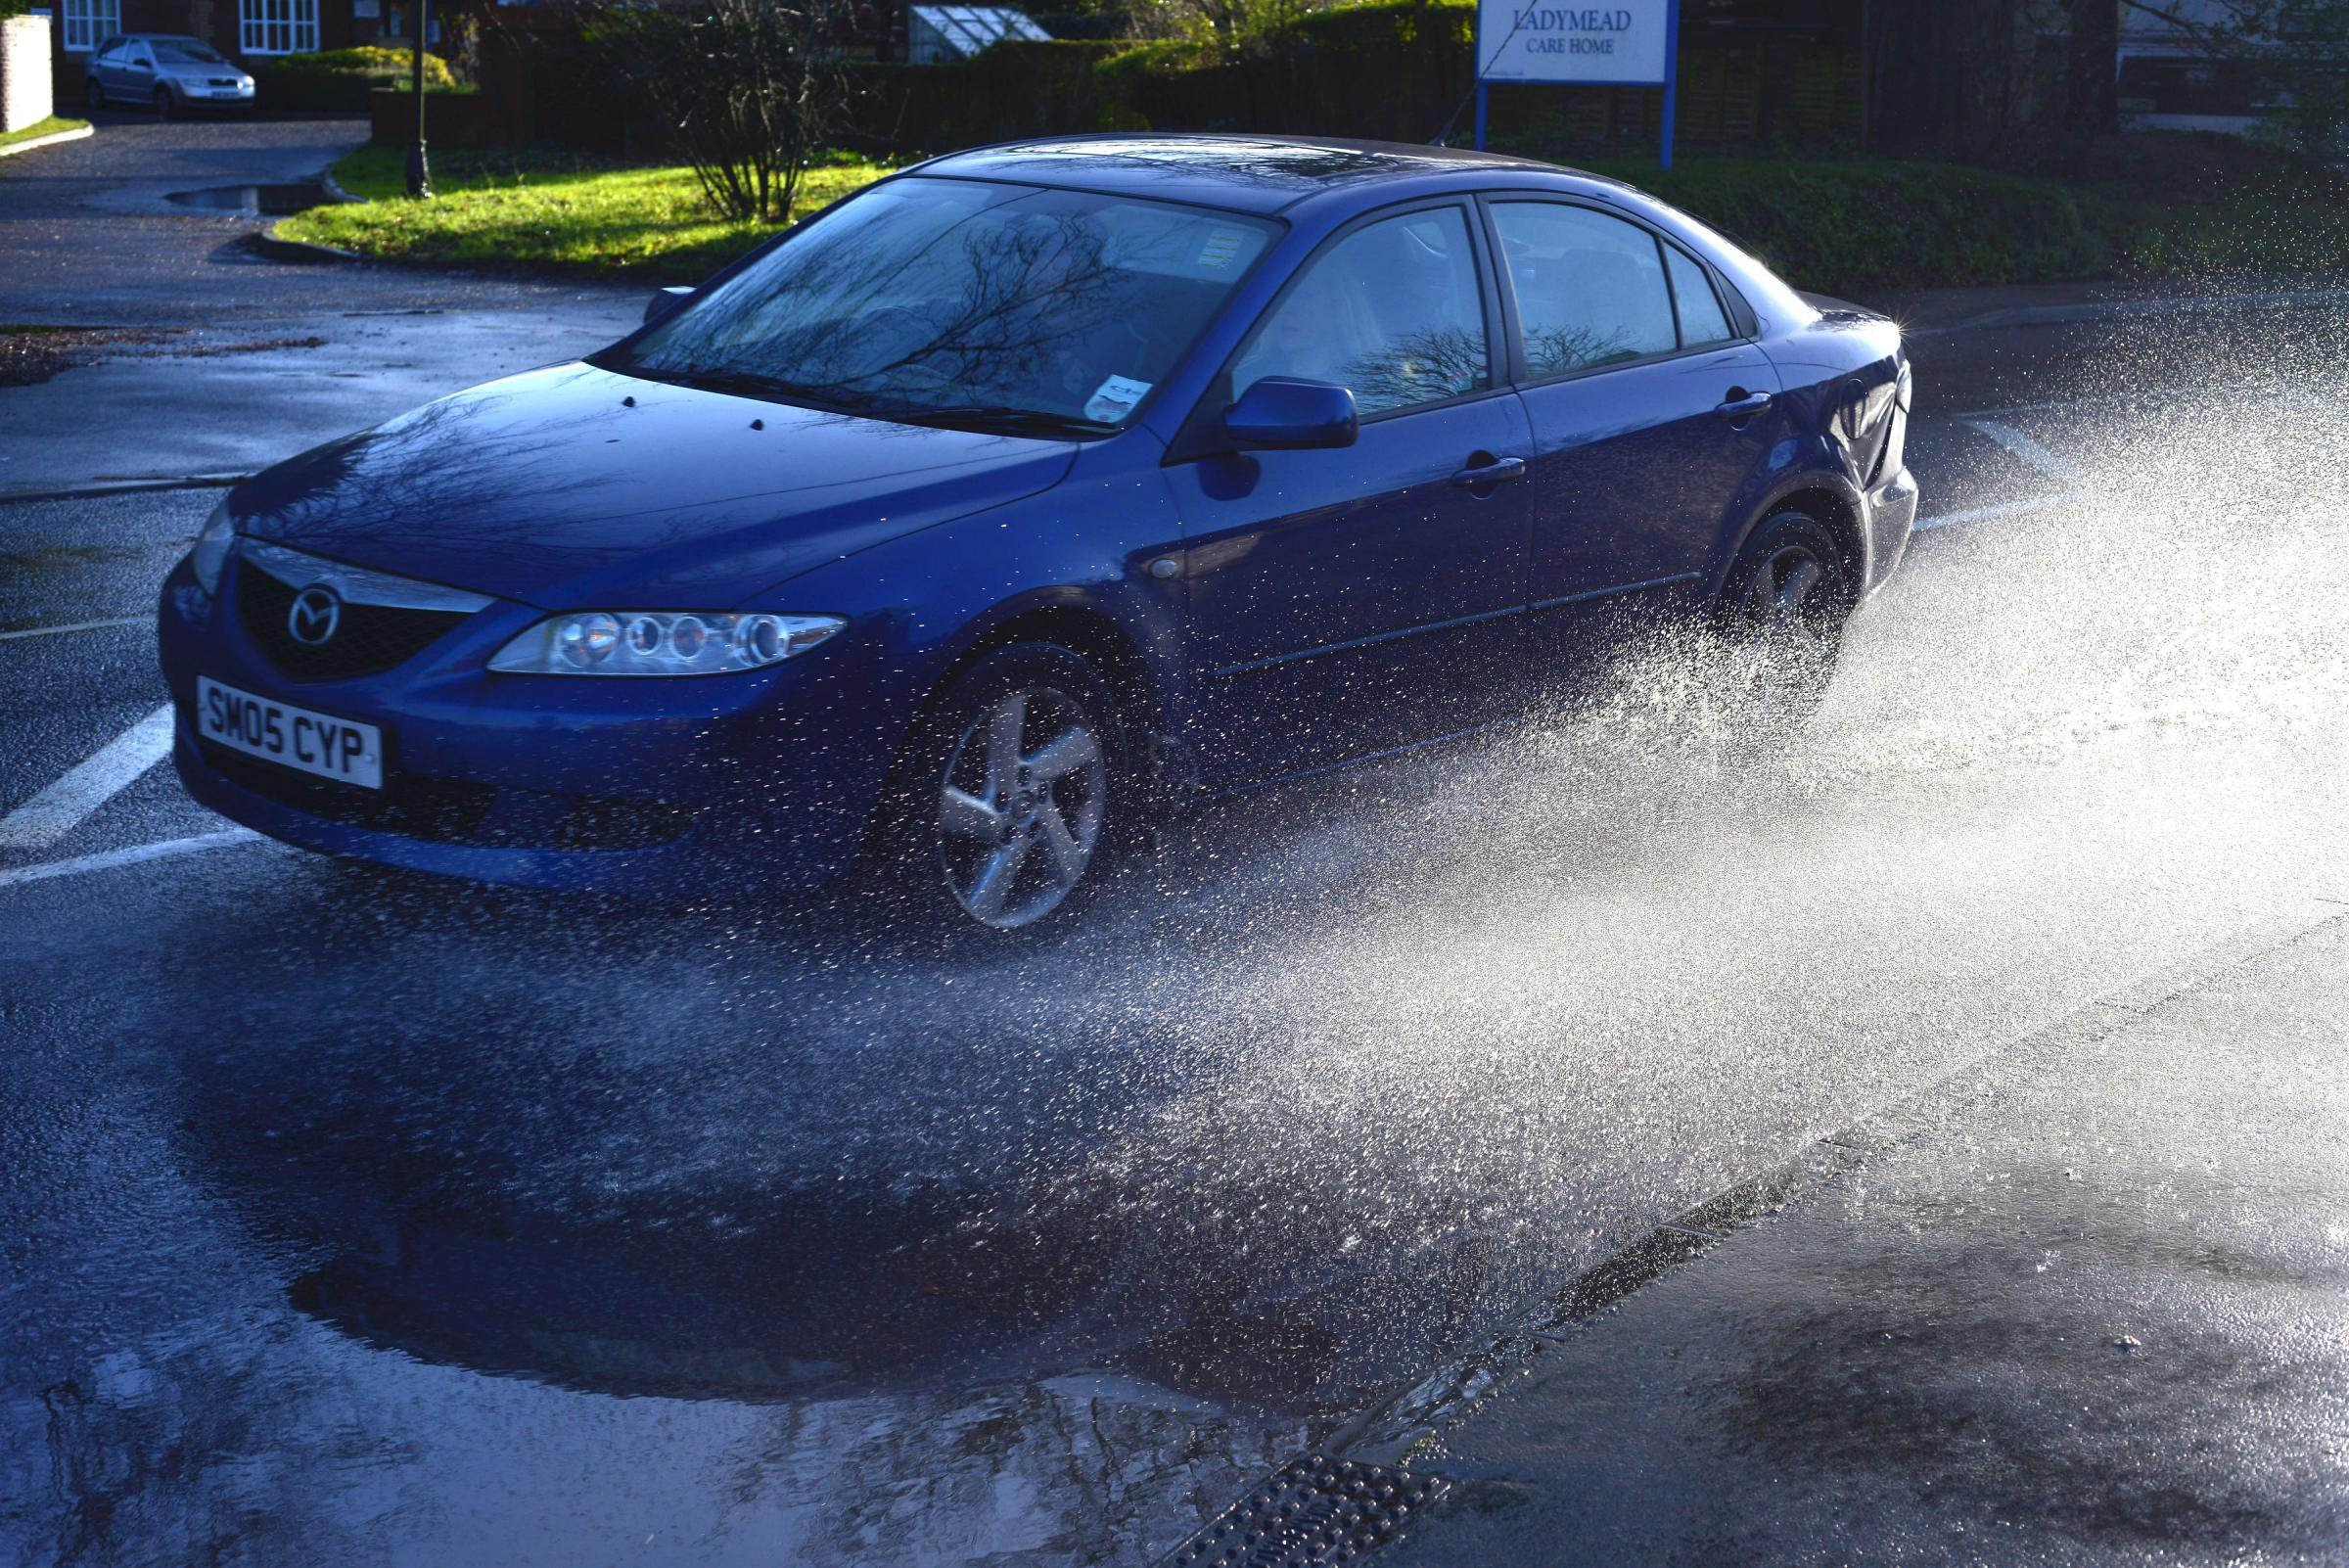 Flooding causing misery for drivers around the town